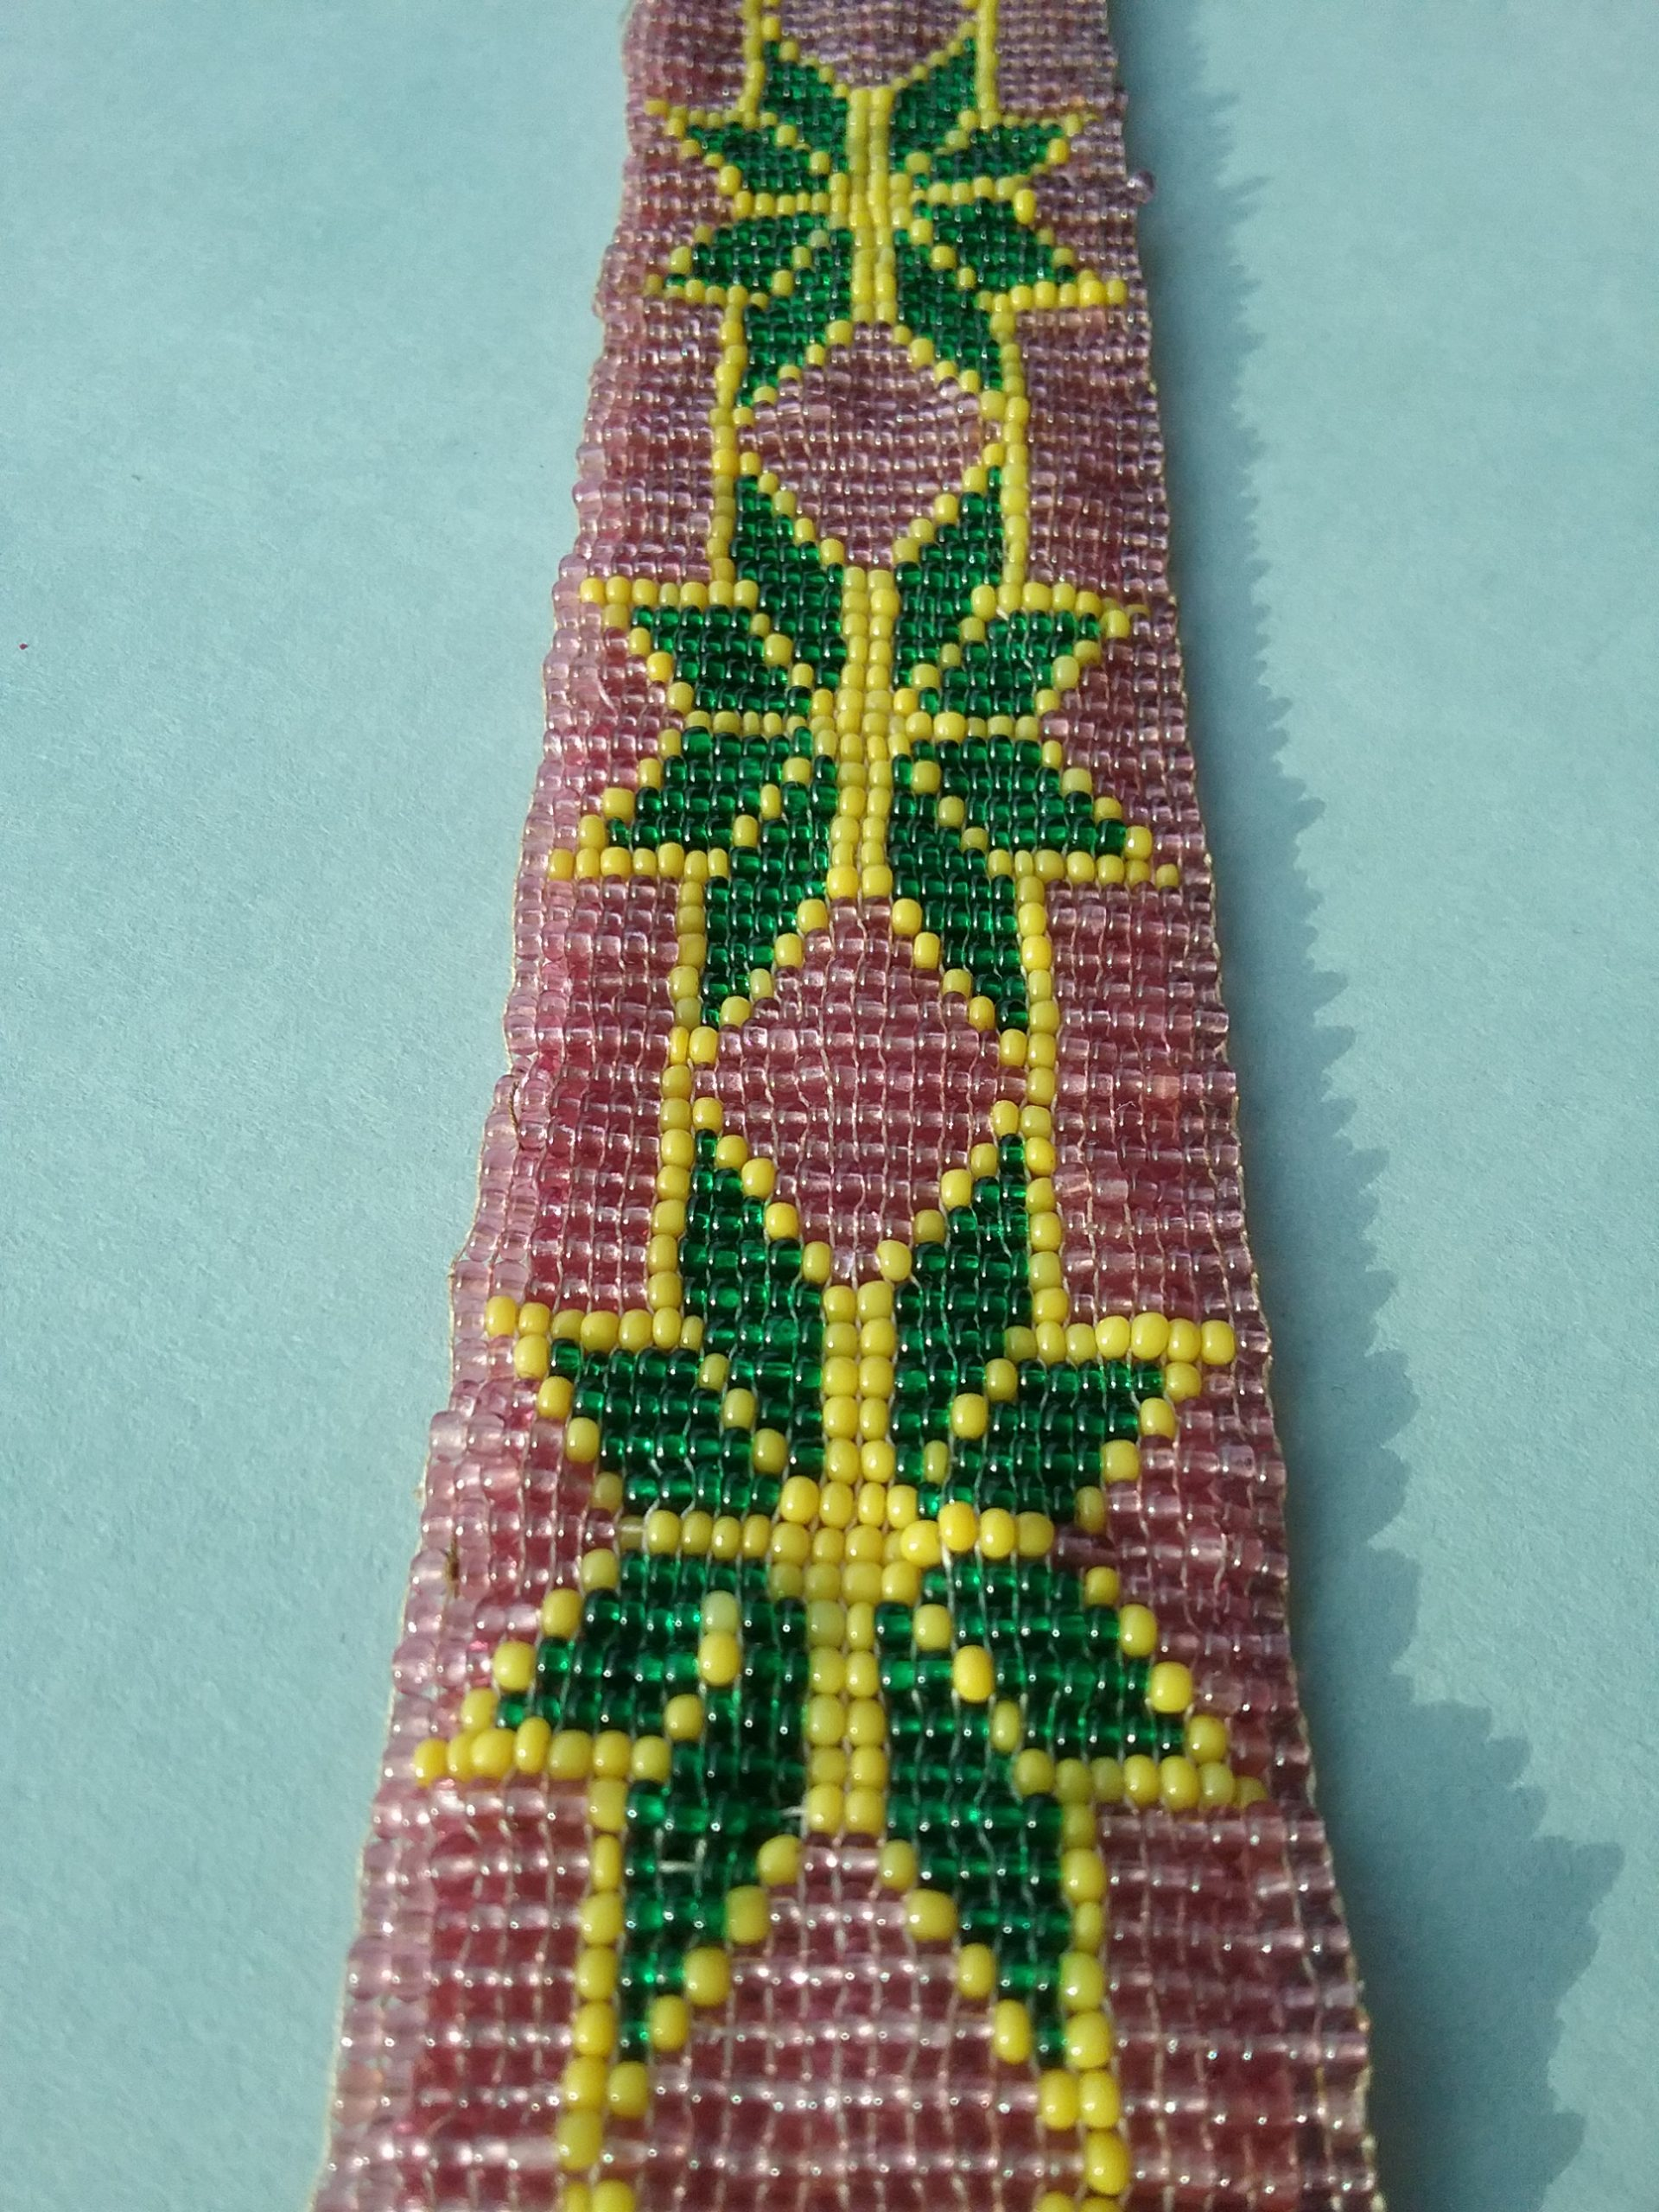 Beaded band: Loom-woven beaded band with pink, green, and yellow seed beads. Donated by Mary (Richardson) Harker, daughter of Nathan Richardson.